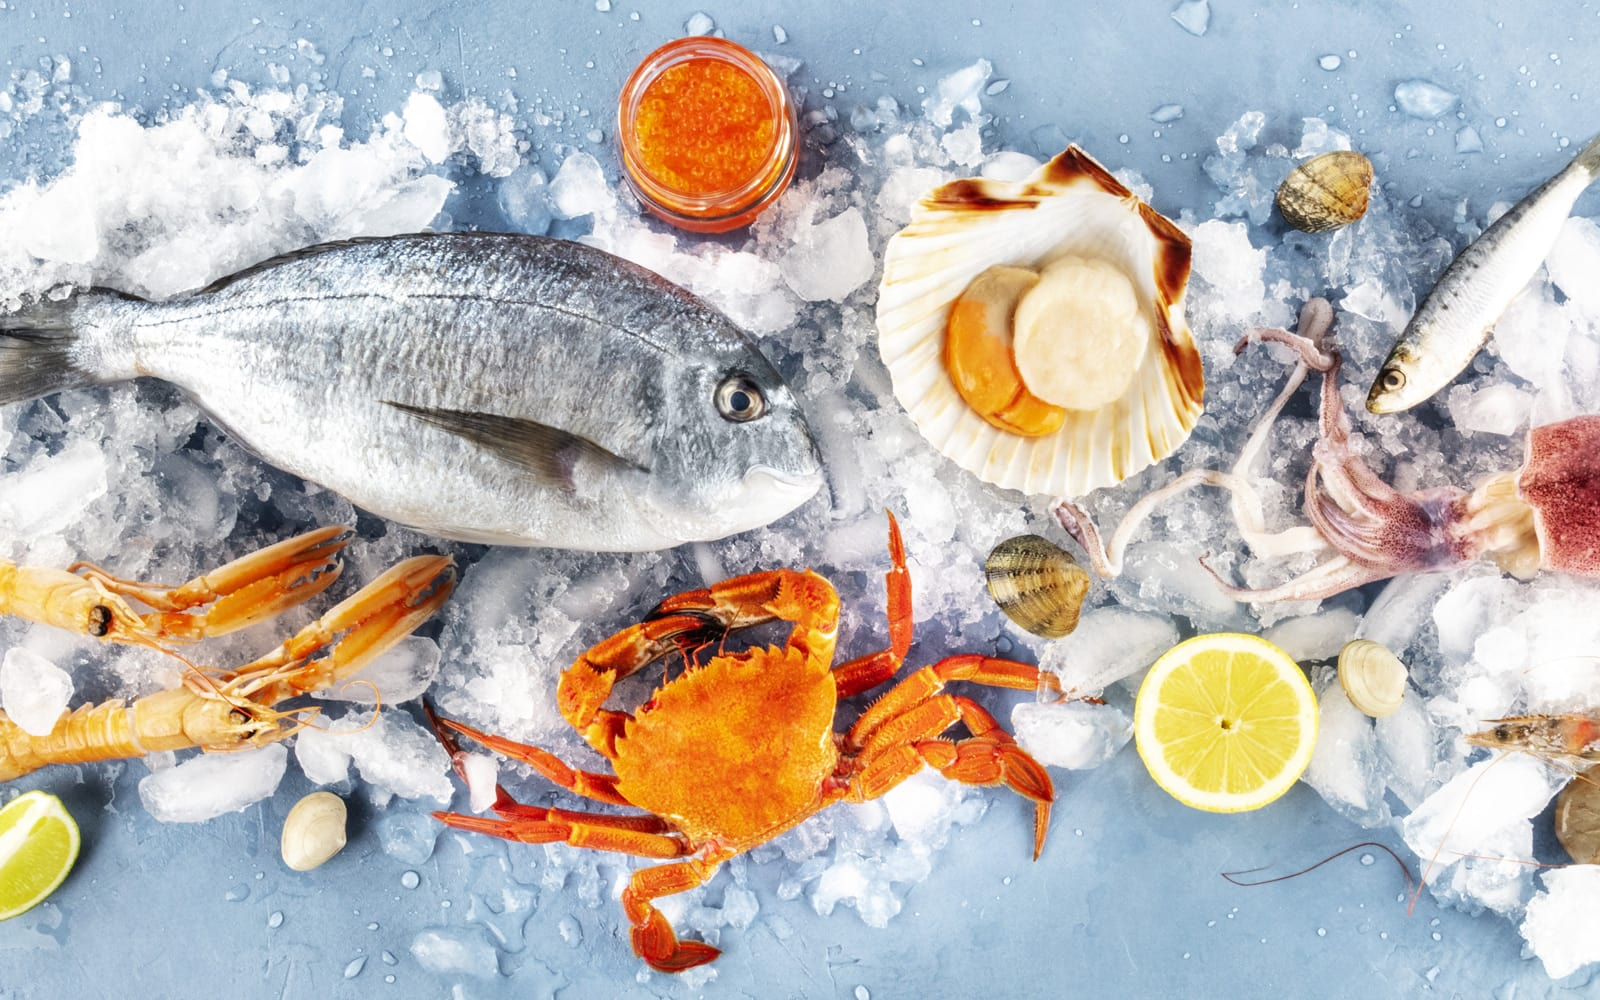 Seafood sourced with care